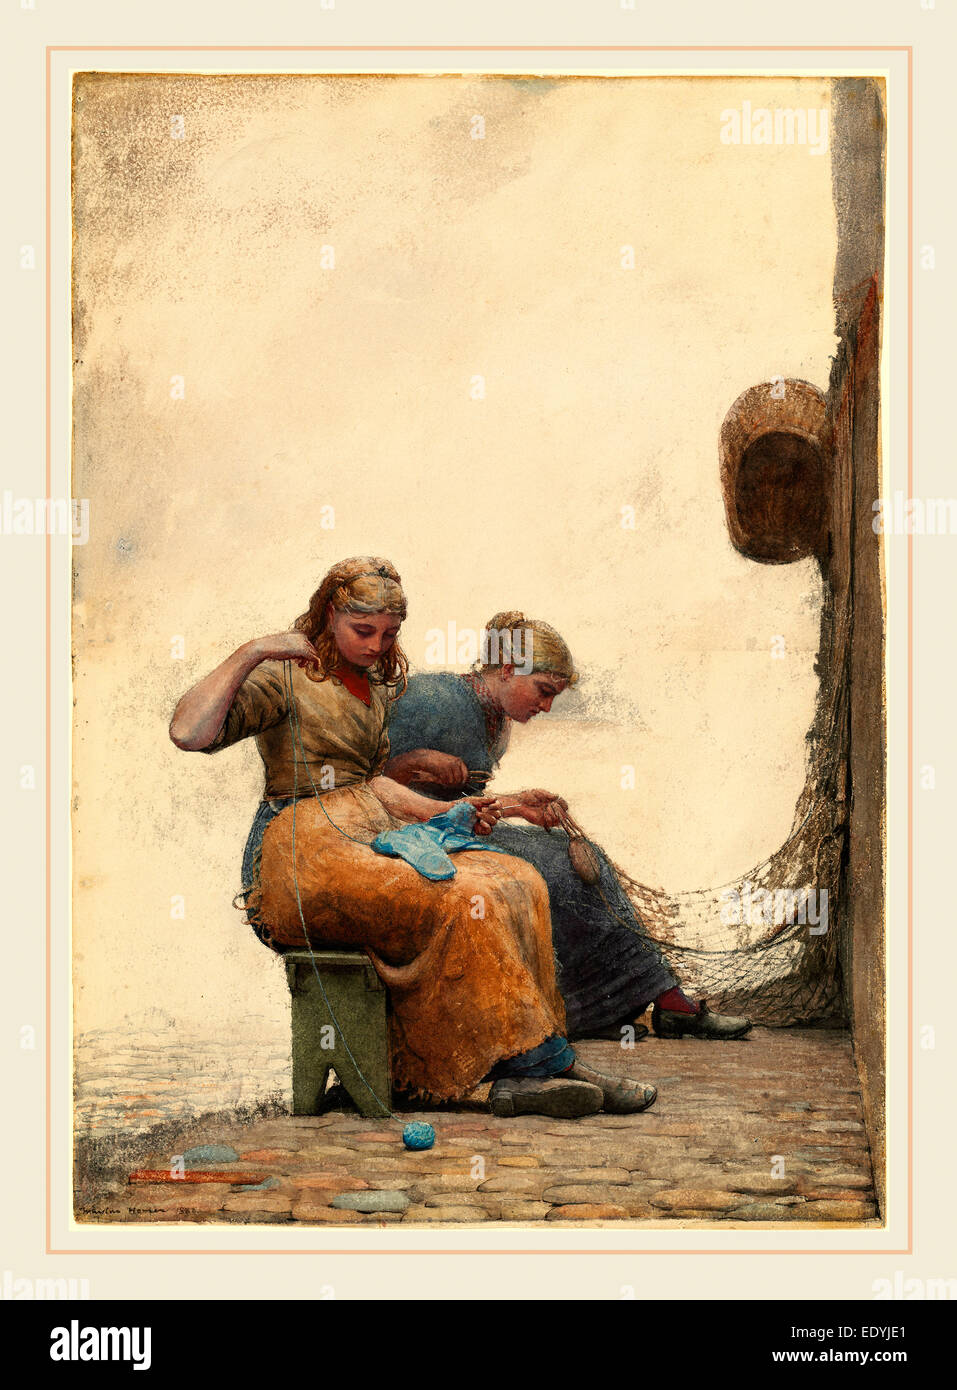 Winslow Homer, American (1836-1910), Mending the Nets, 1882, watercolor and gouache over graphite - Stock Image